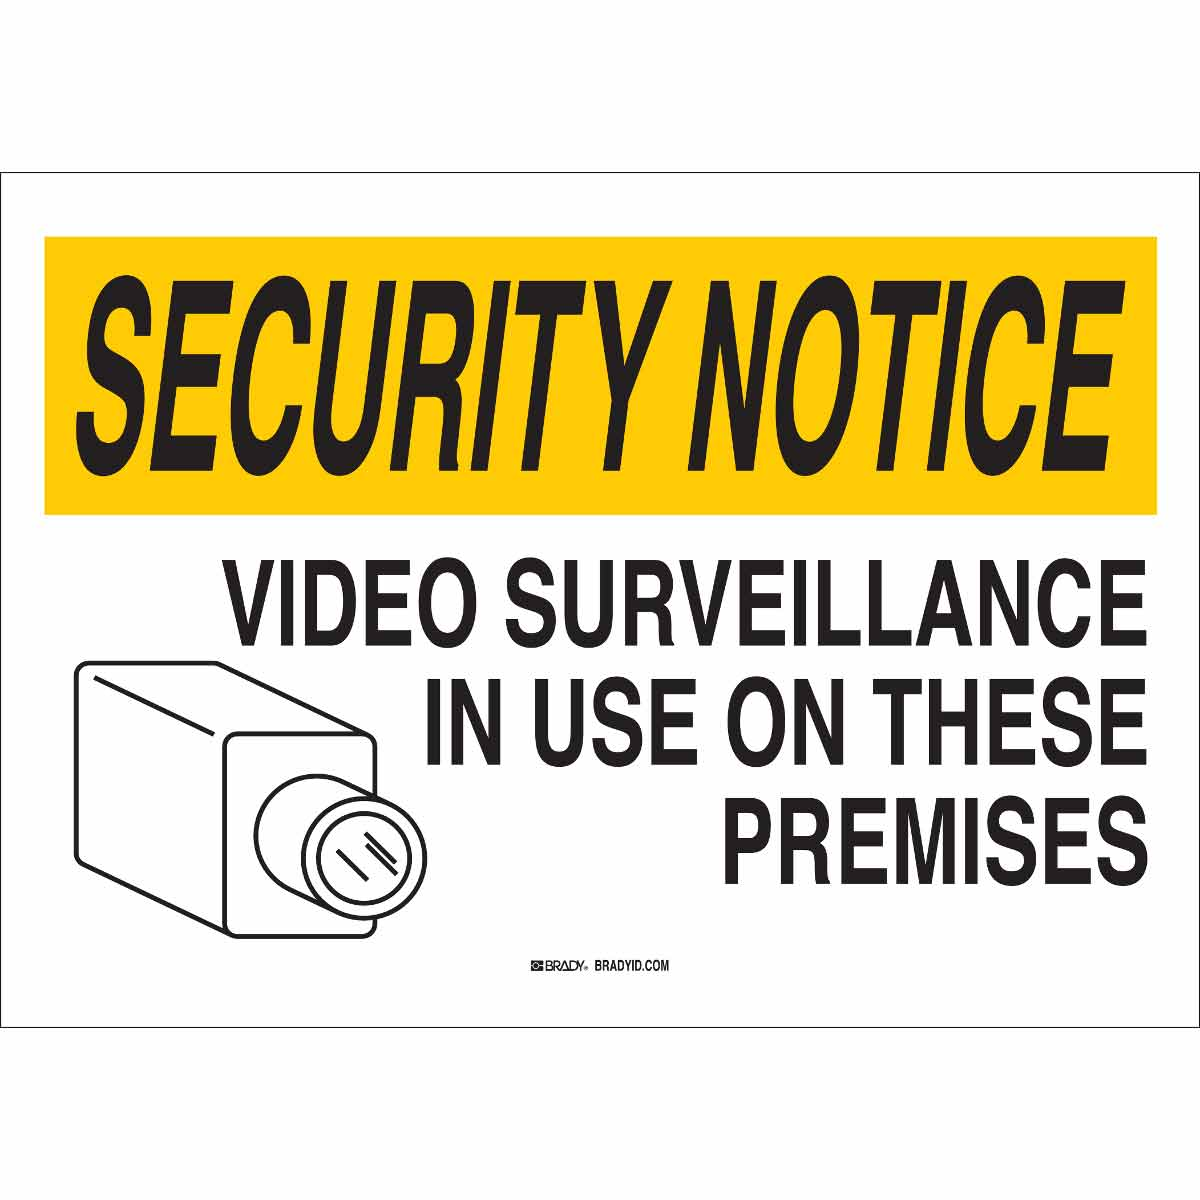 Brady® 95496 Rectangular Security Notice Sign, 14 in H x 20 in W, Black/Yellow on White, B-401 Polystyrene, Corner Hole/Surface Mount